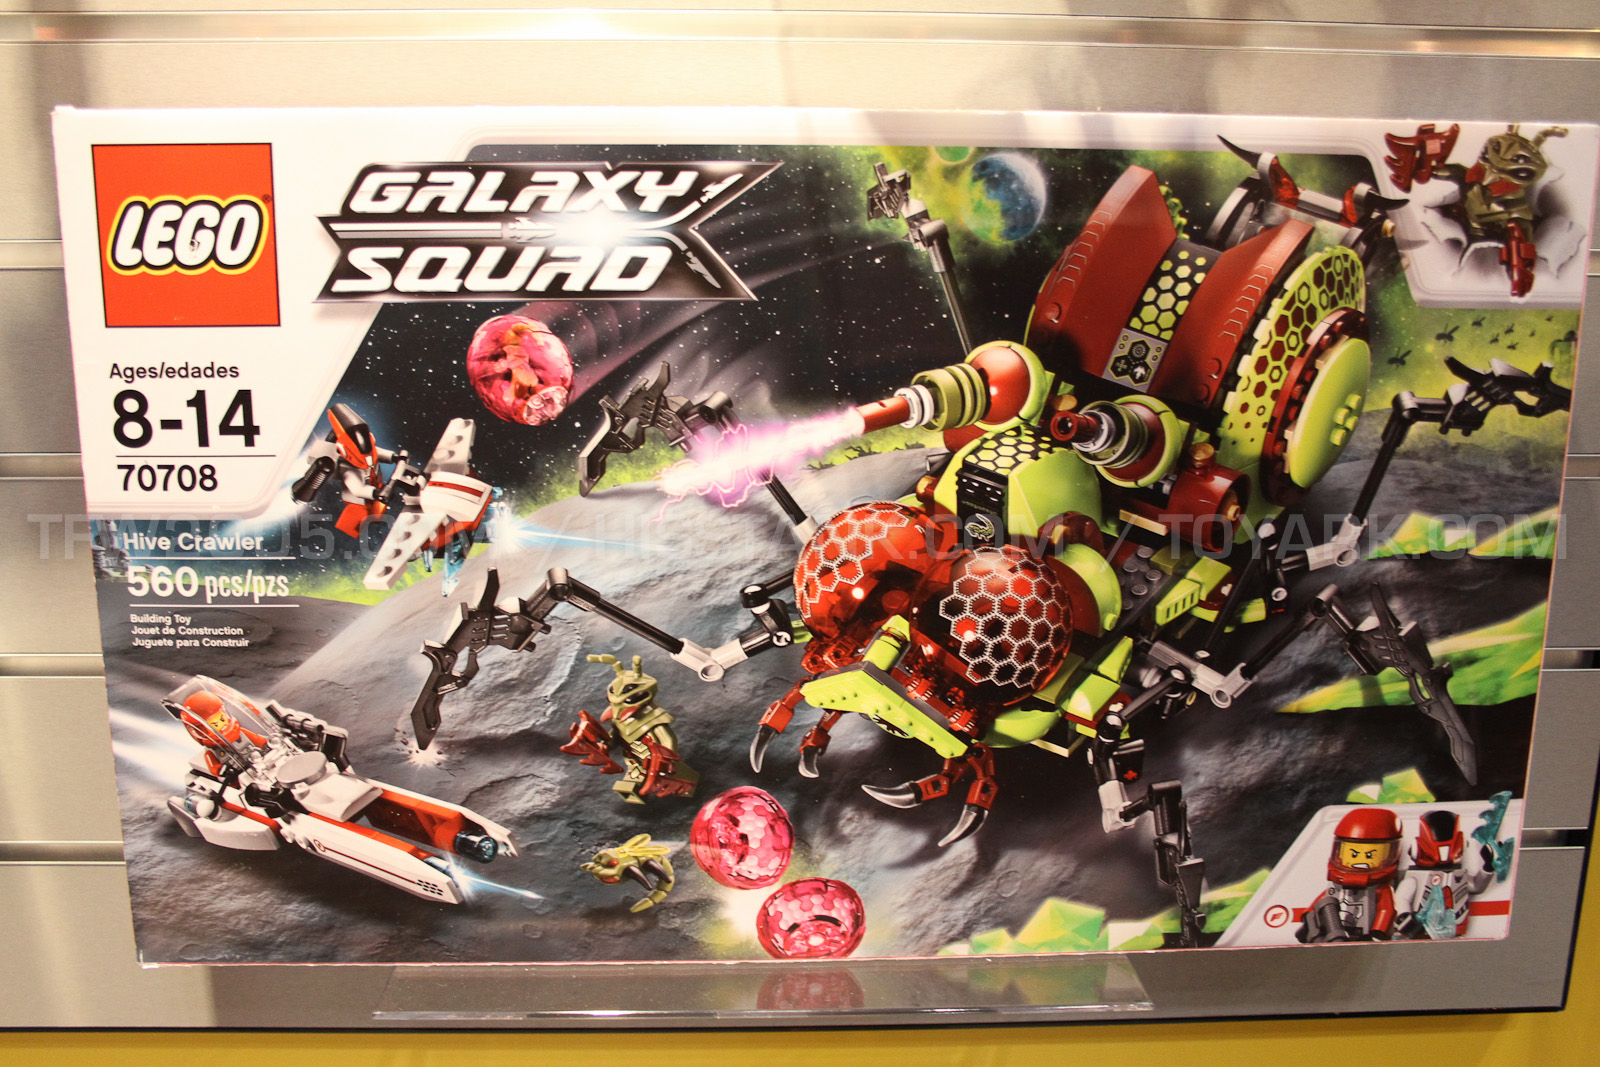 Hundreds of pictures from the New York Toy Fair have been released